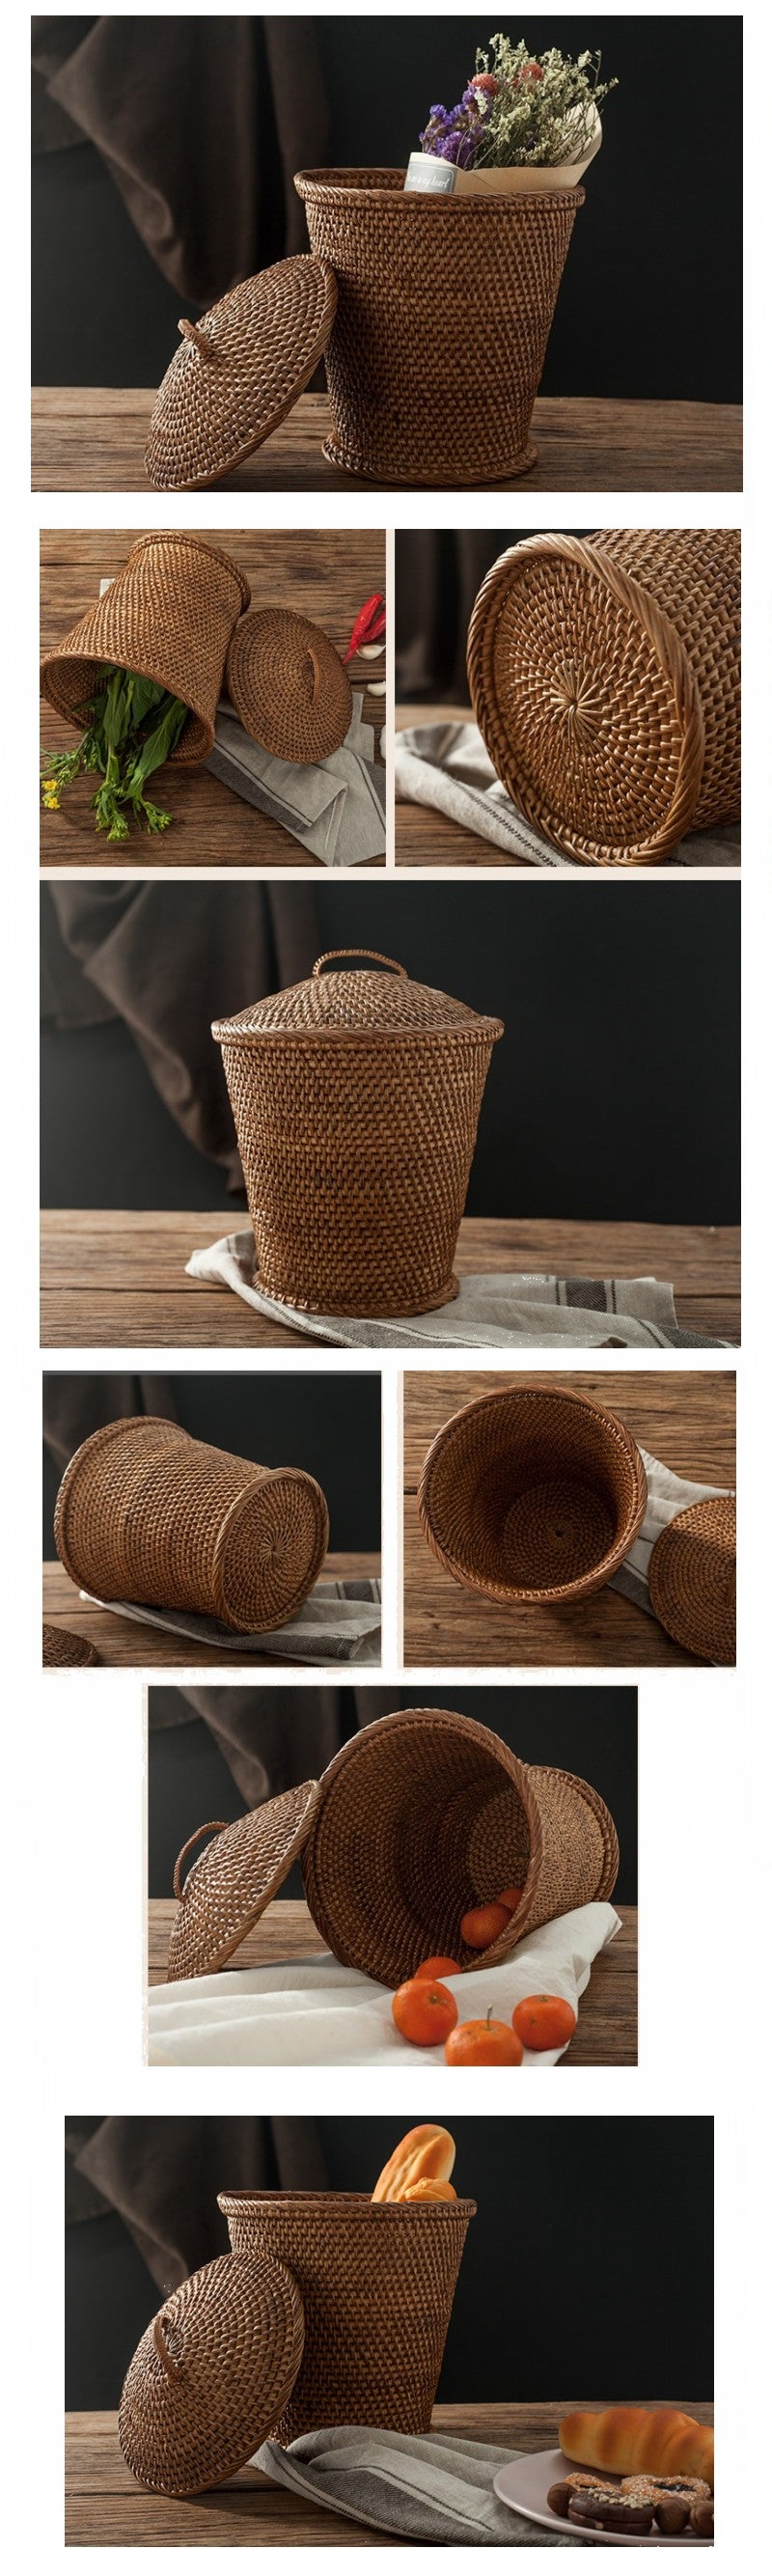 Indonesia Hand Woven Storage Basket with Cover